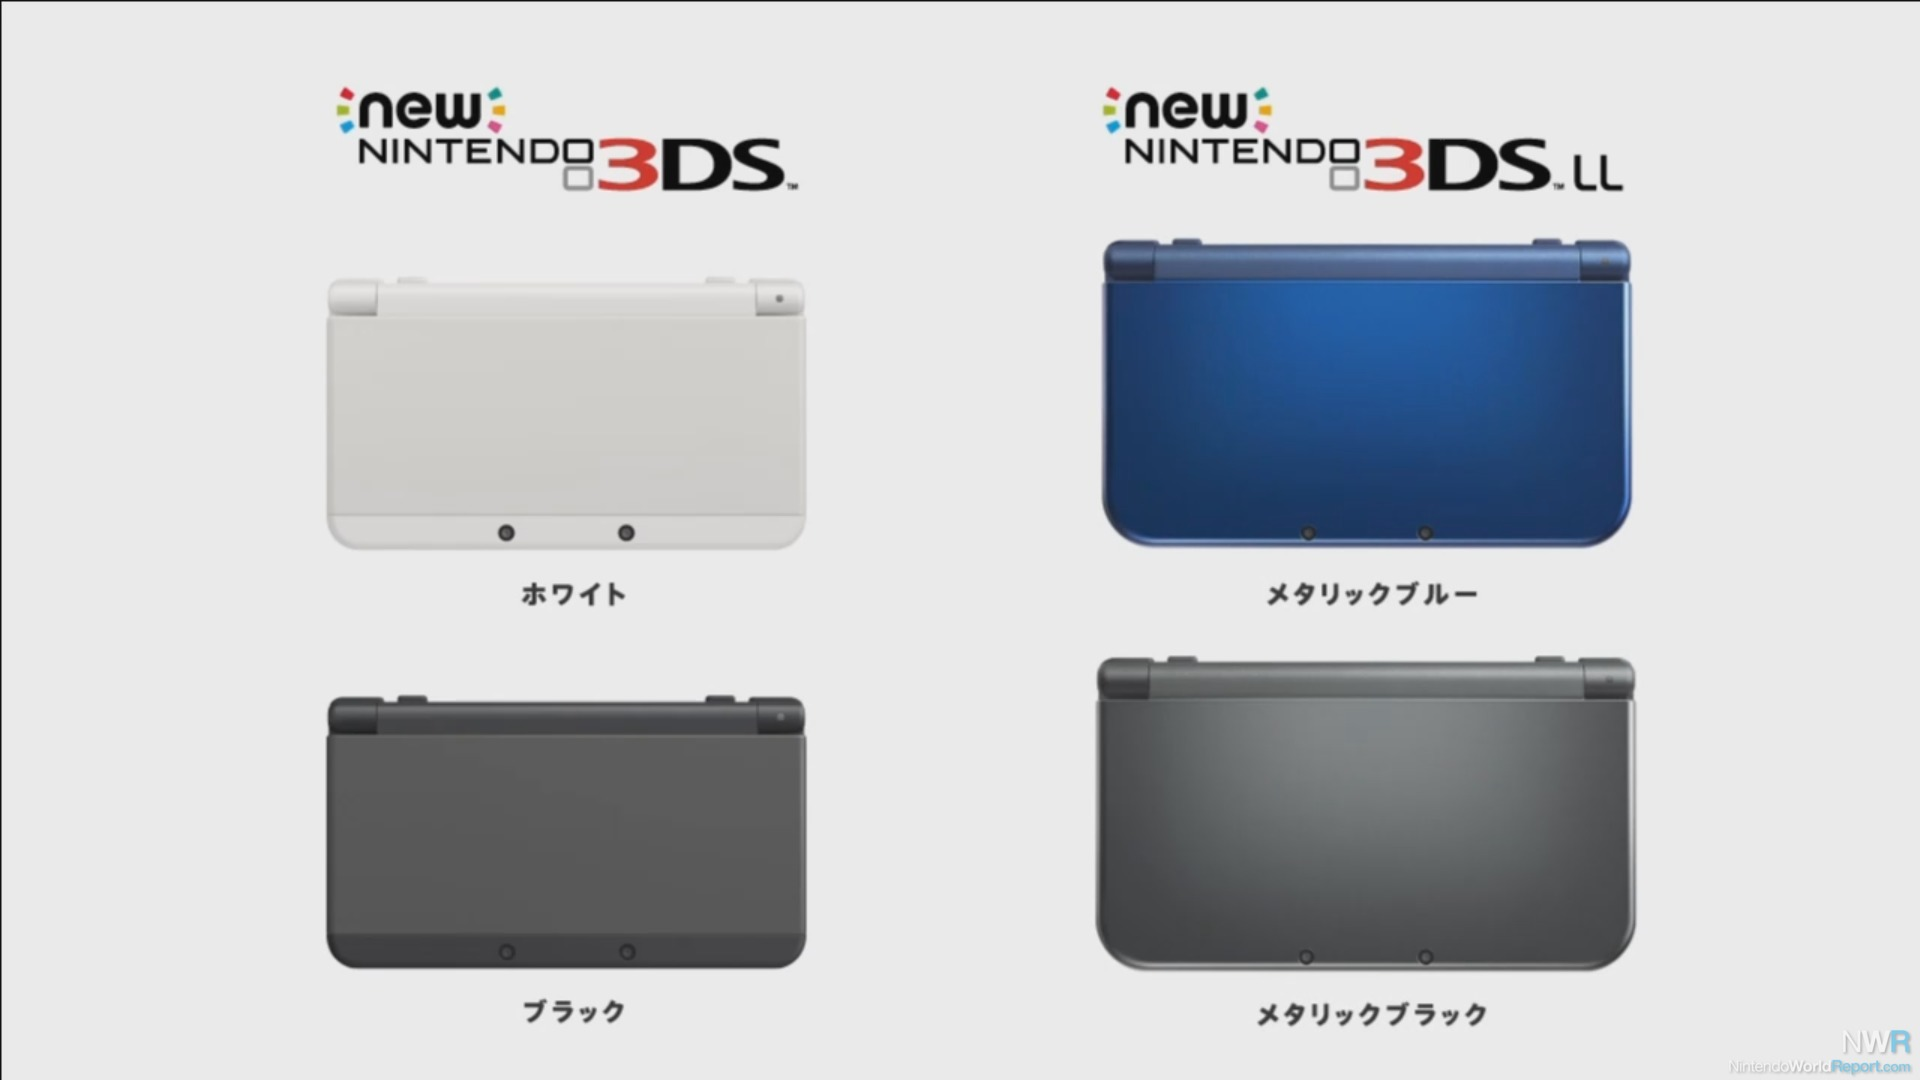 3Ds Future Releases is the new 3ds more game boy color or game boy micro